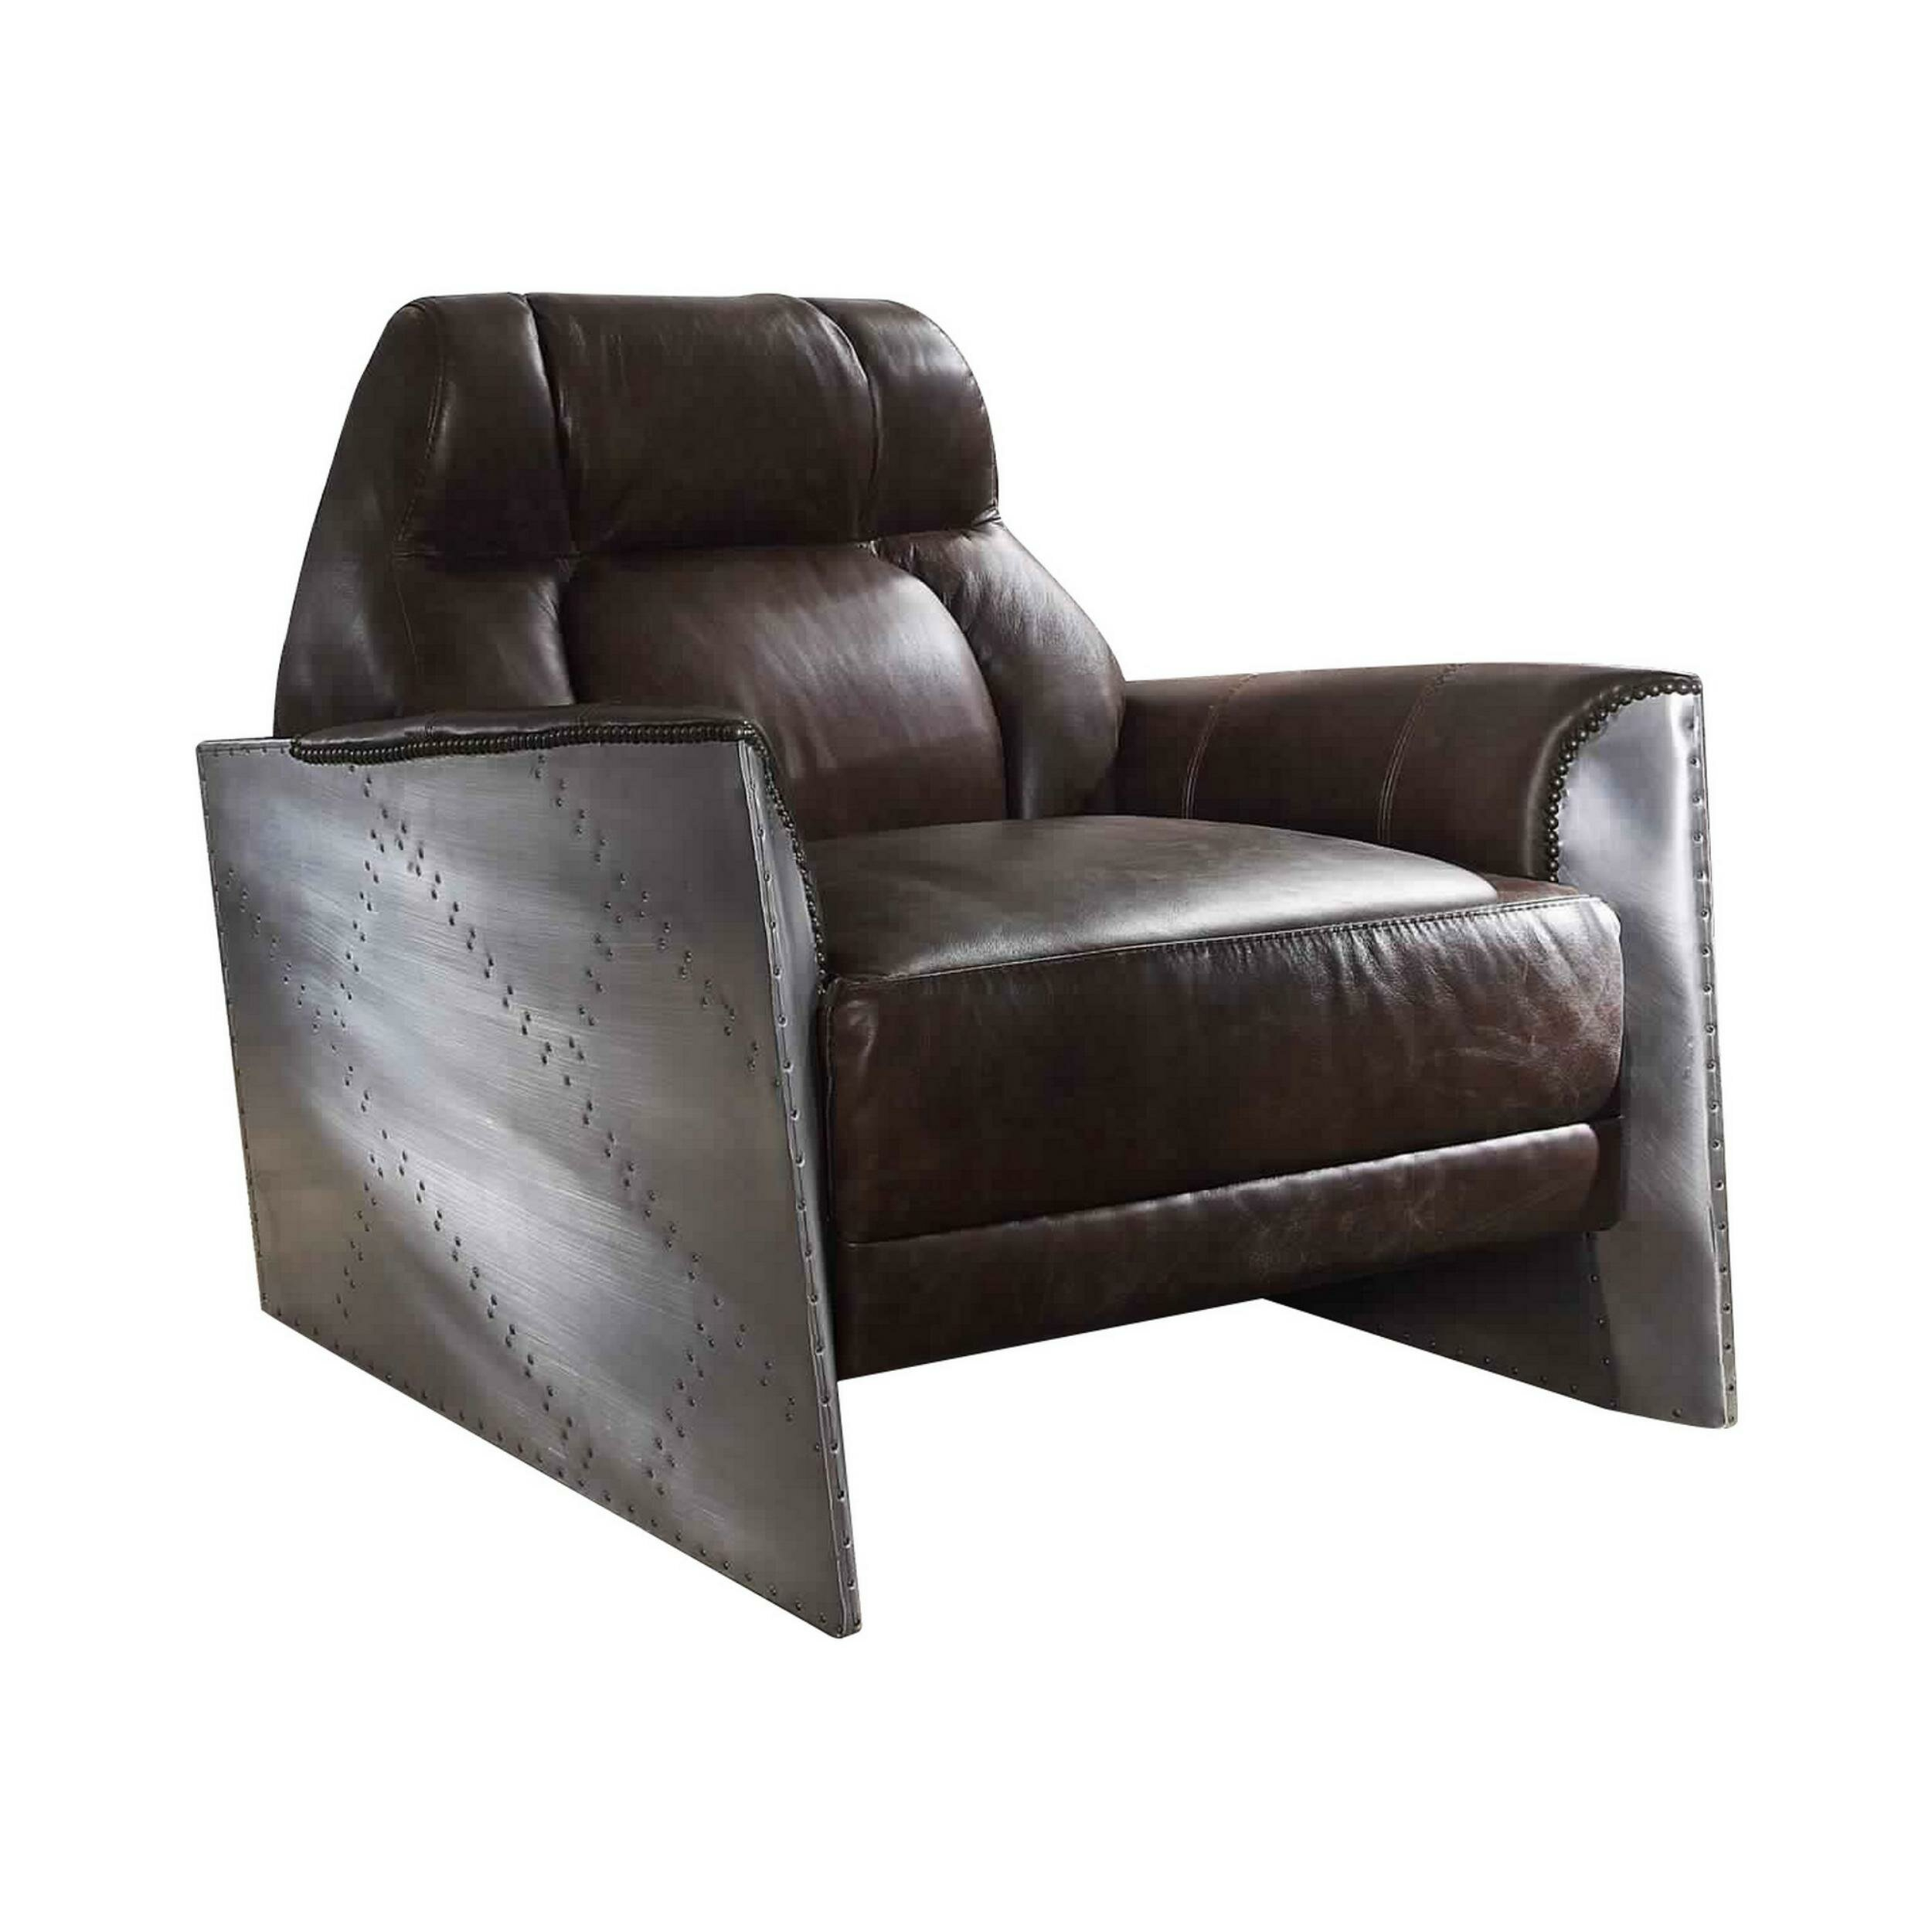 "Smotherman 37"" W Faux Leather Armchair Within Jarin Faux Leather Armchairs (View 11 of 15)"